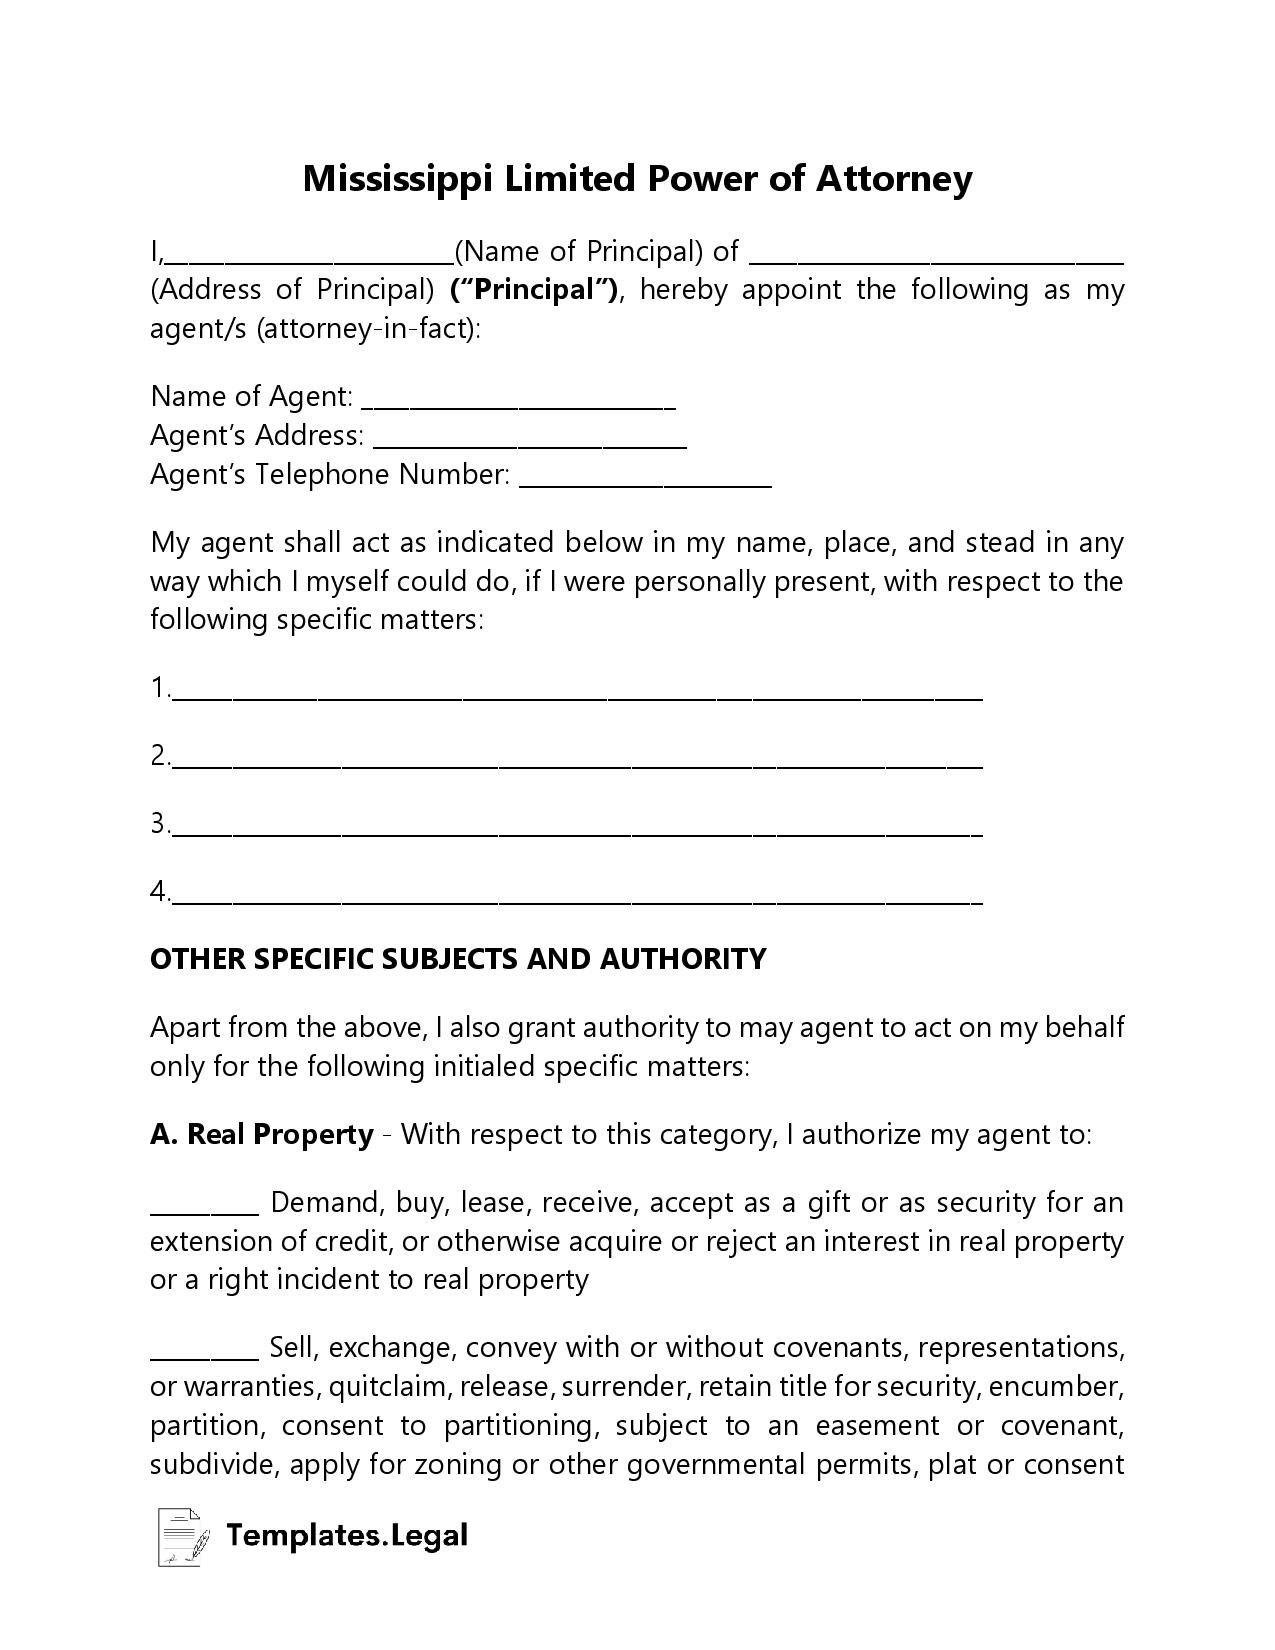 Mississippi Limited Power of Attorney - Templates.Legal